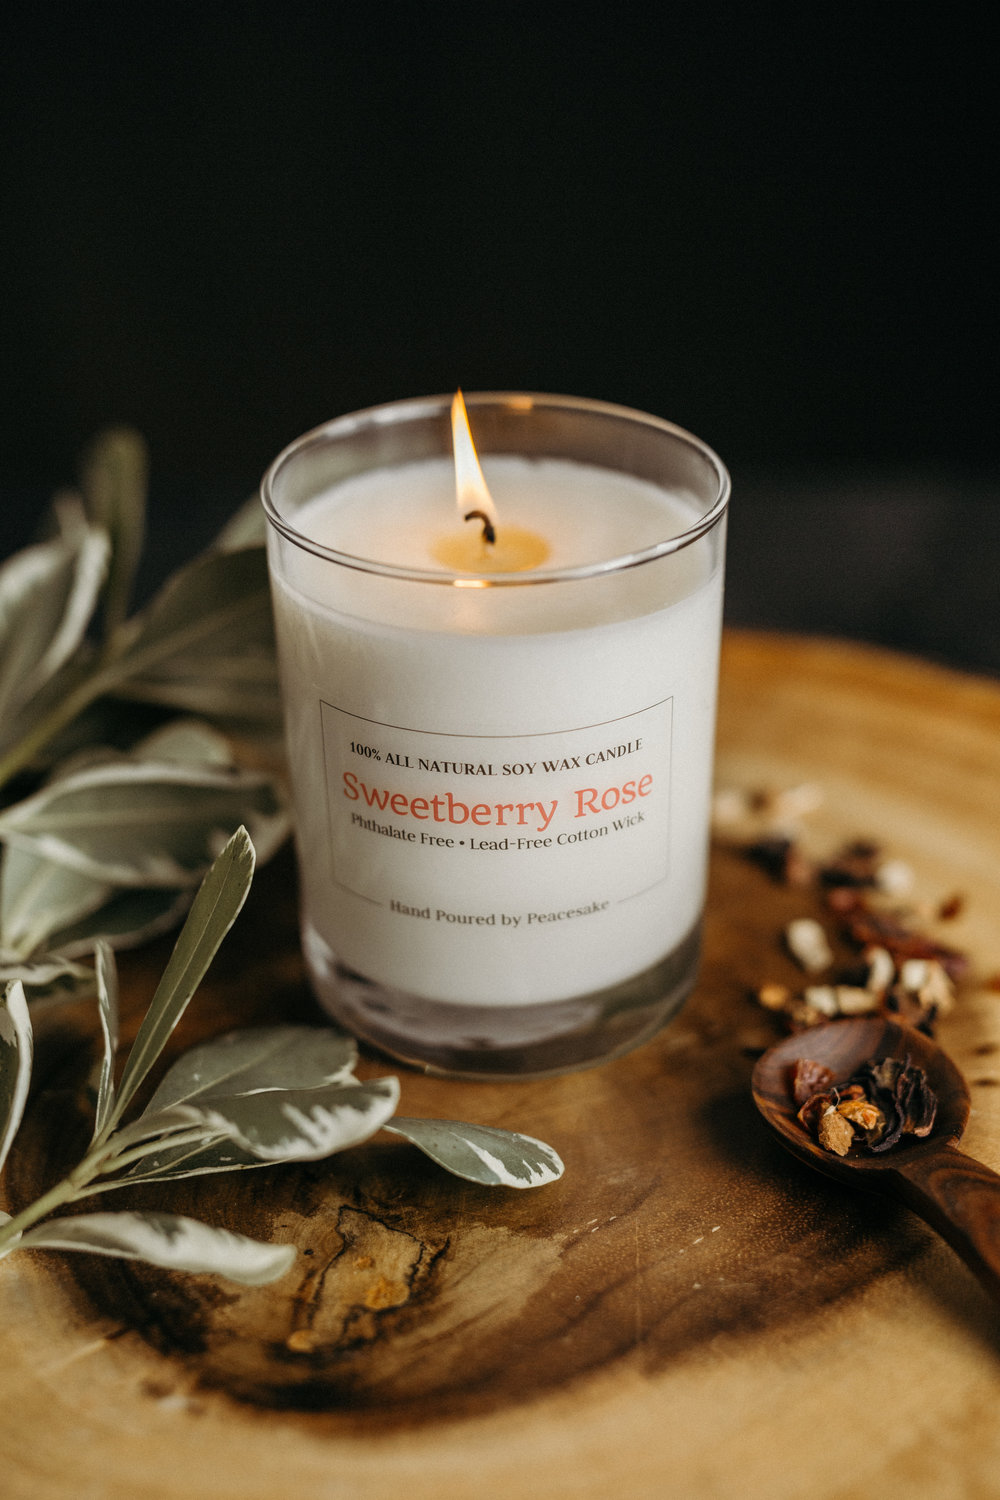 peacesake-phthalate-free-soy-wax-candle-sweet-berry-rose-cotton-wick